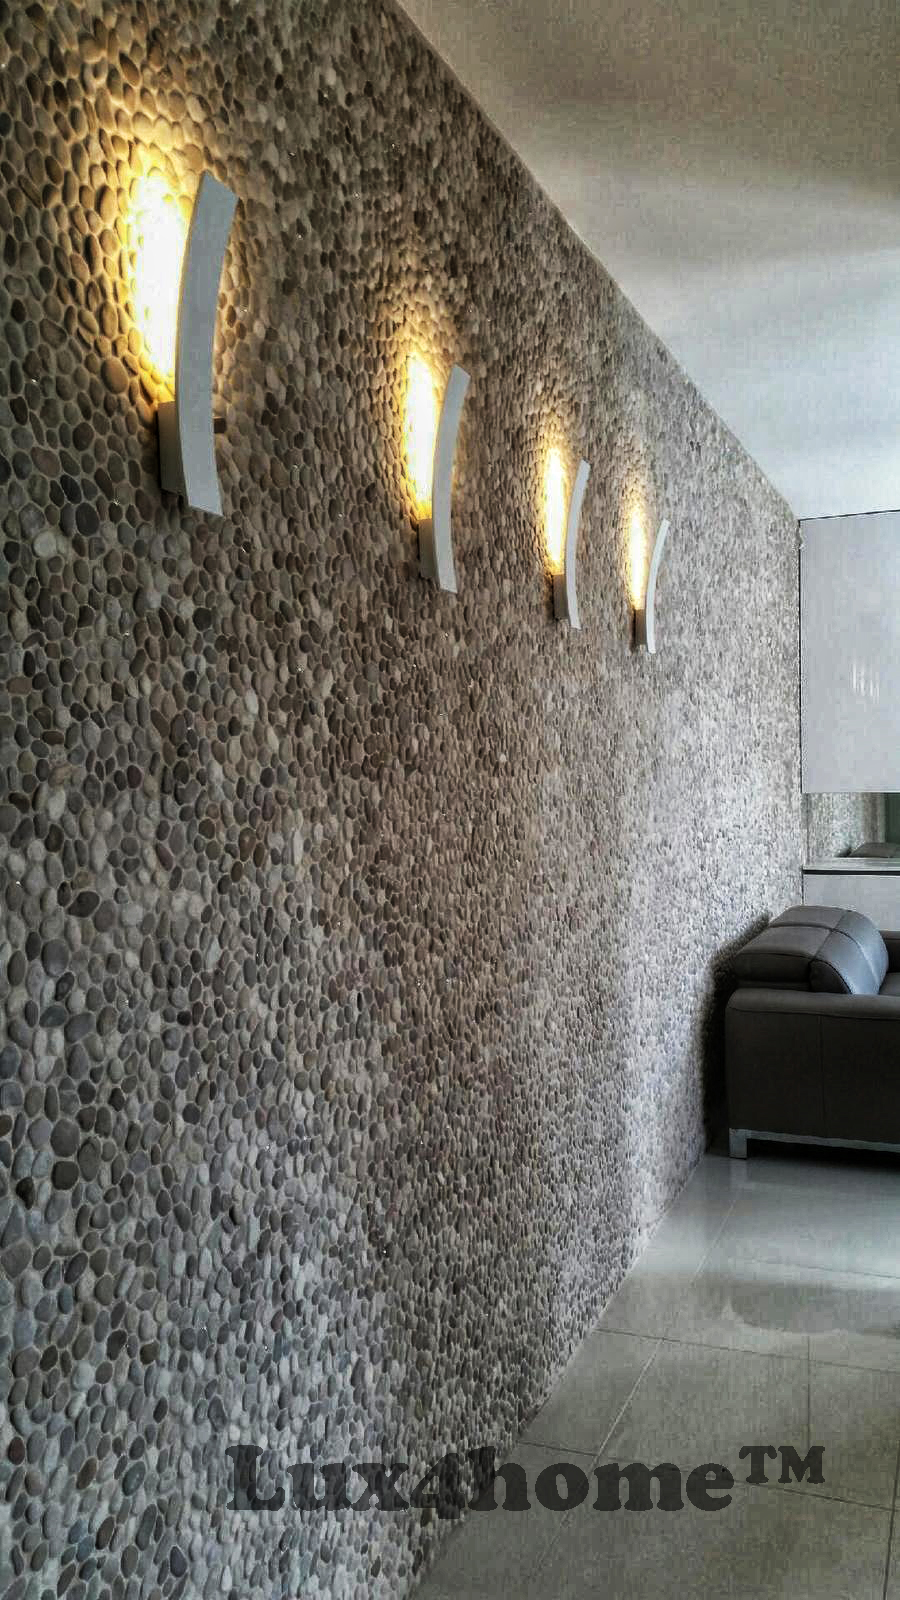 Luxury Apartment With Pebble Tiles On Walls Beige Pebble